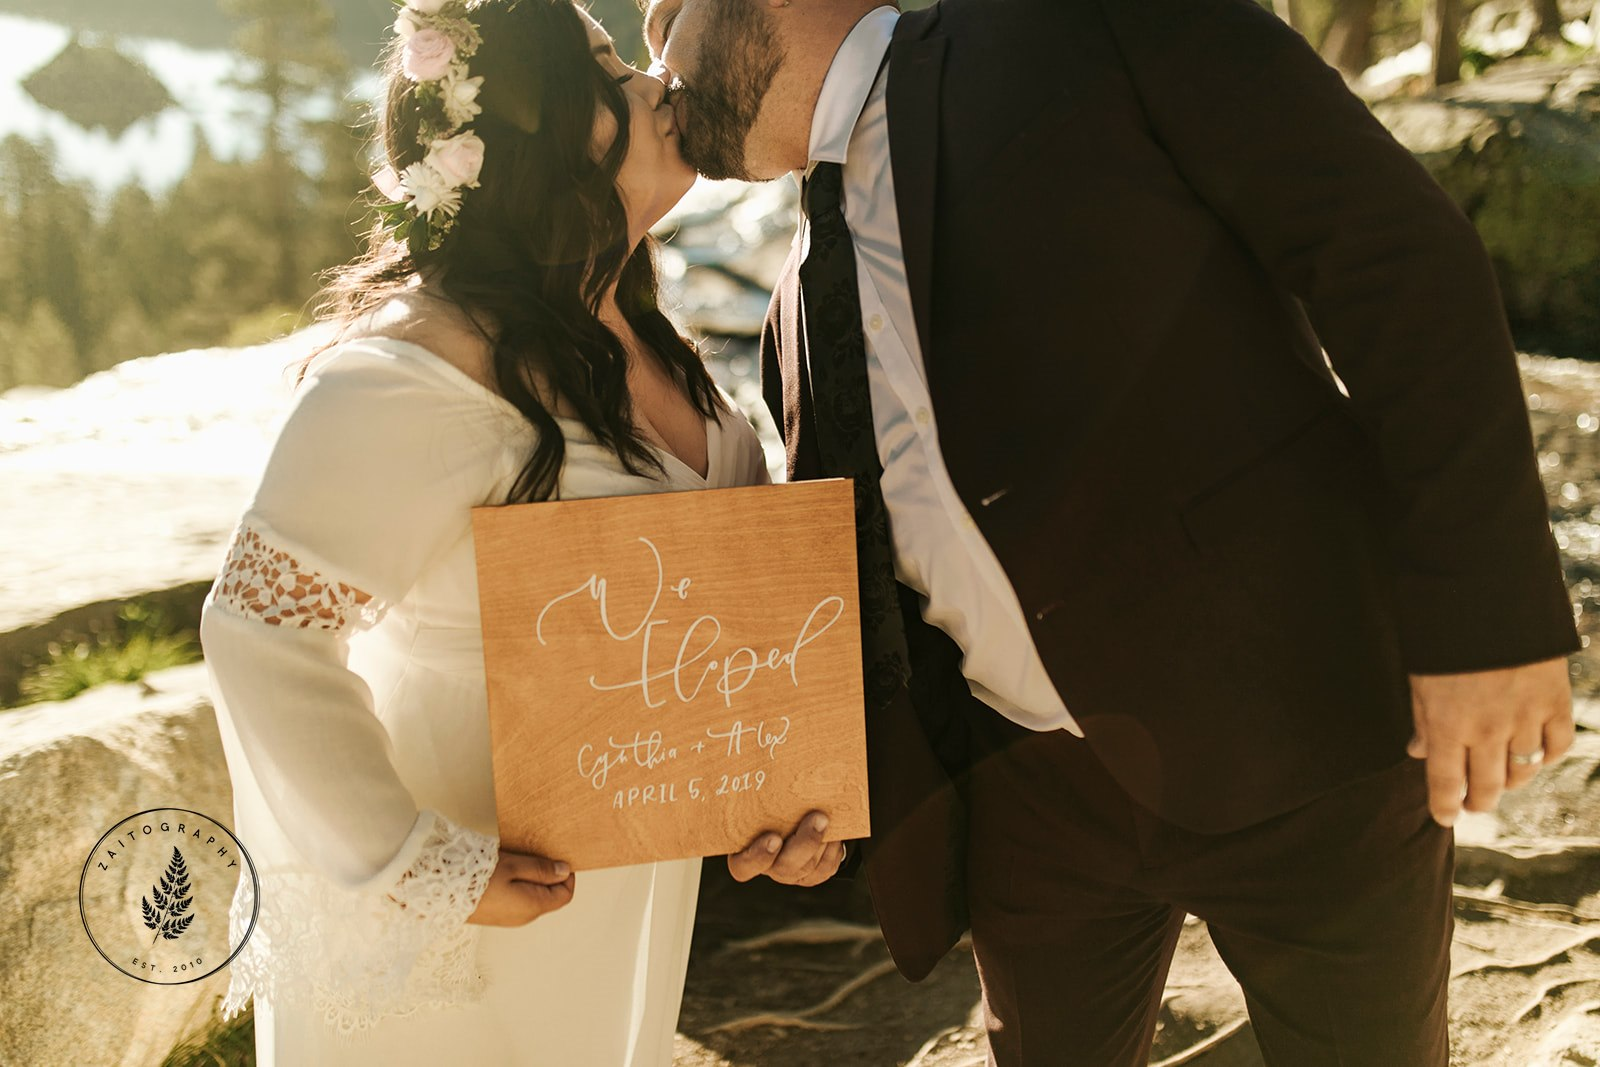 """We Eloped!"" Sign for Lake Tahoe Elopement"